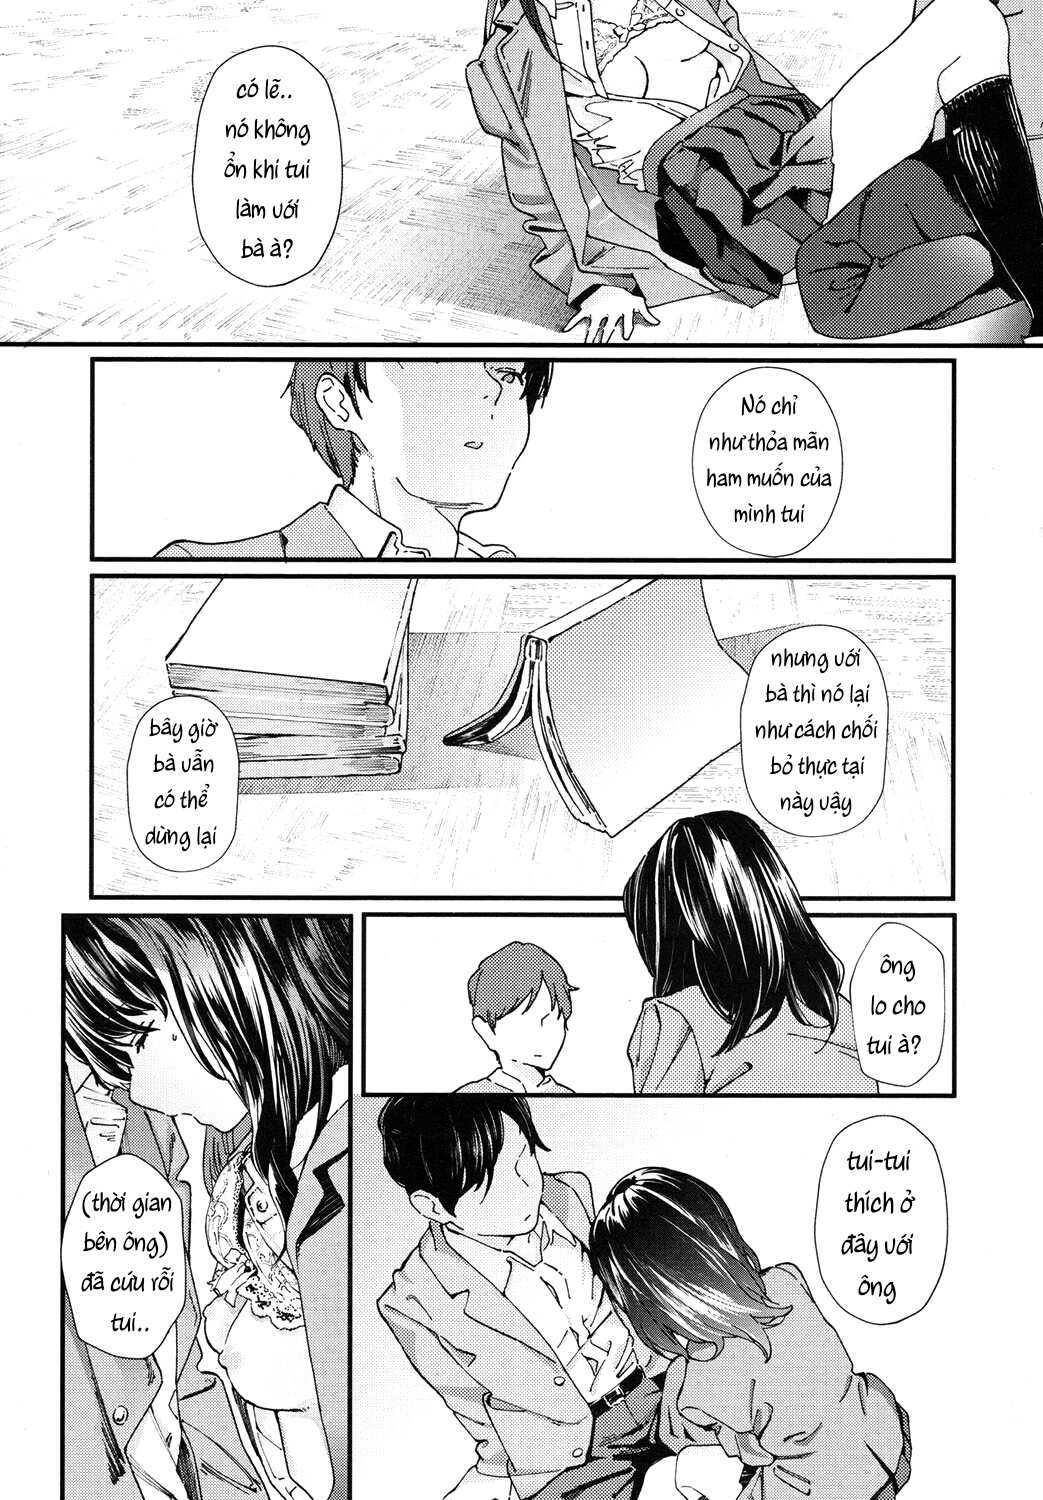 HentaiVN.net - Ảnh 16 - Hijitsuzai Shounen Shoujo - Reality, Boy & Girl - Oneshot